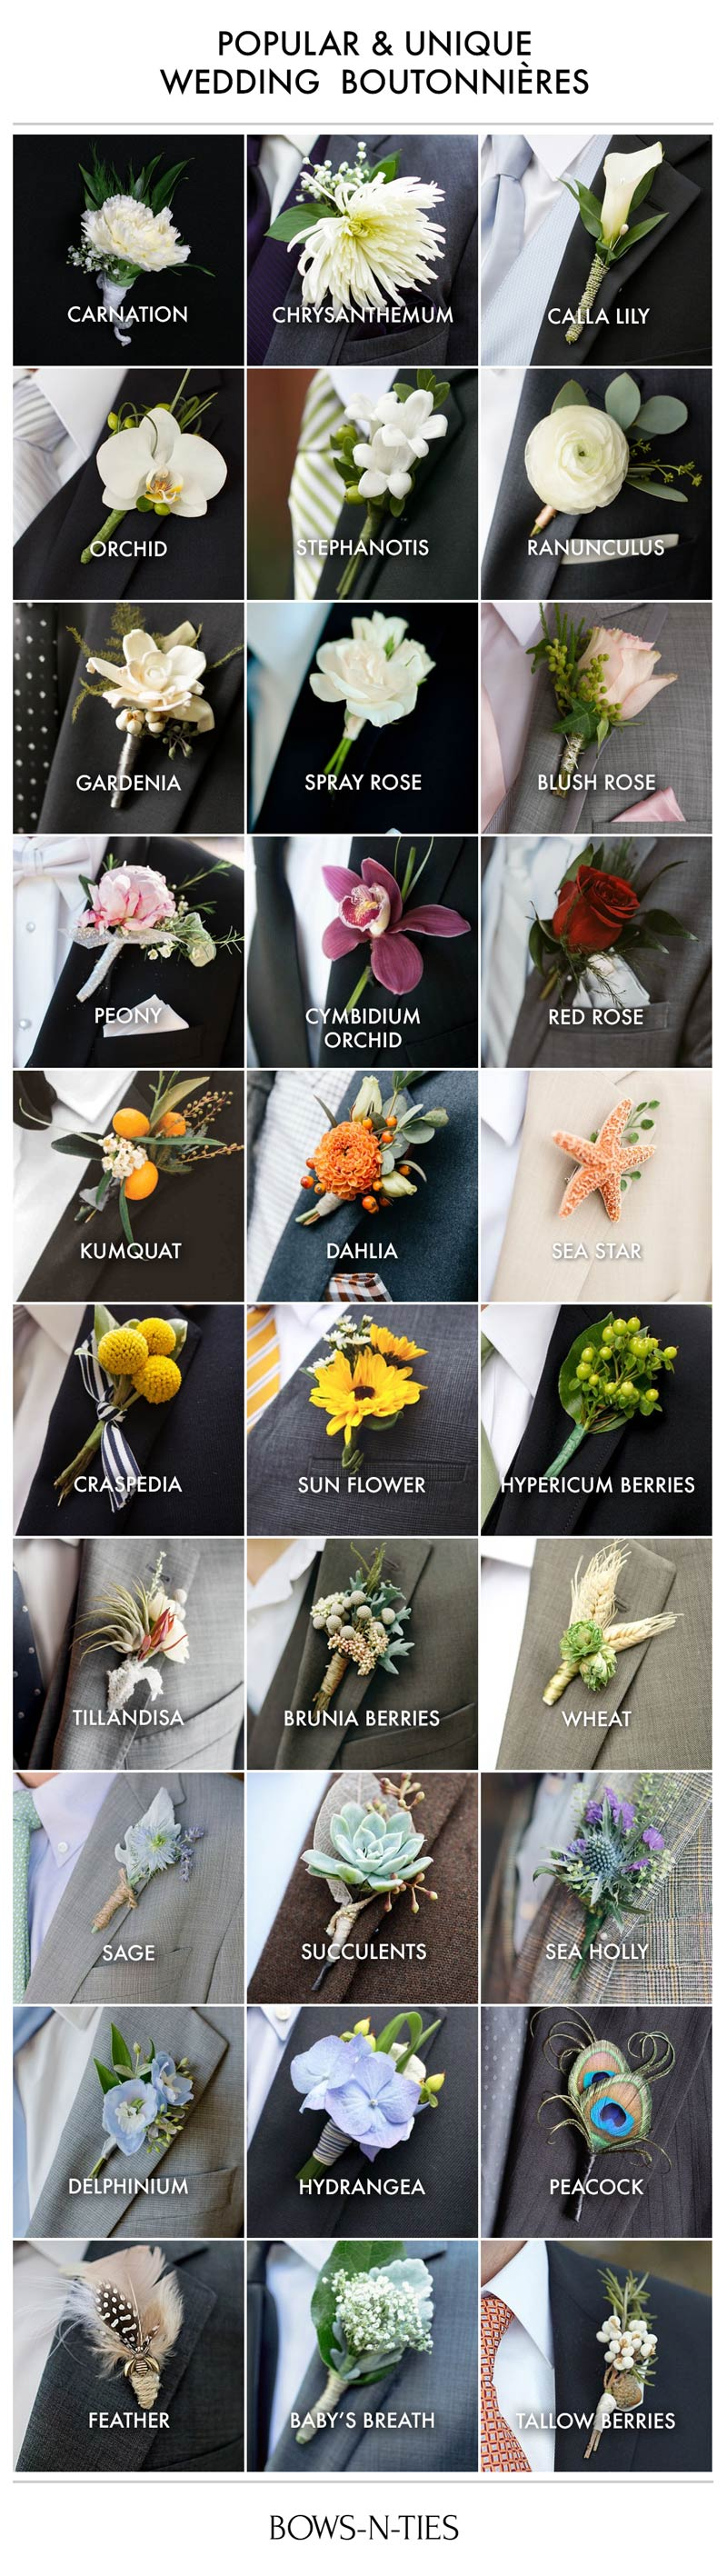 Boutonniere_Guide infographic.jpg